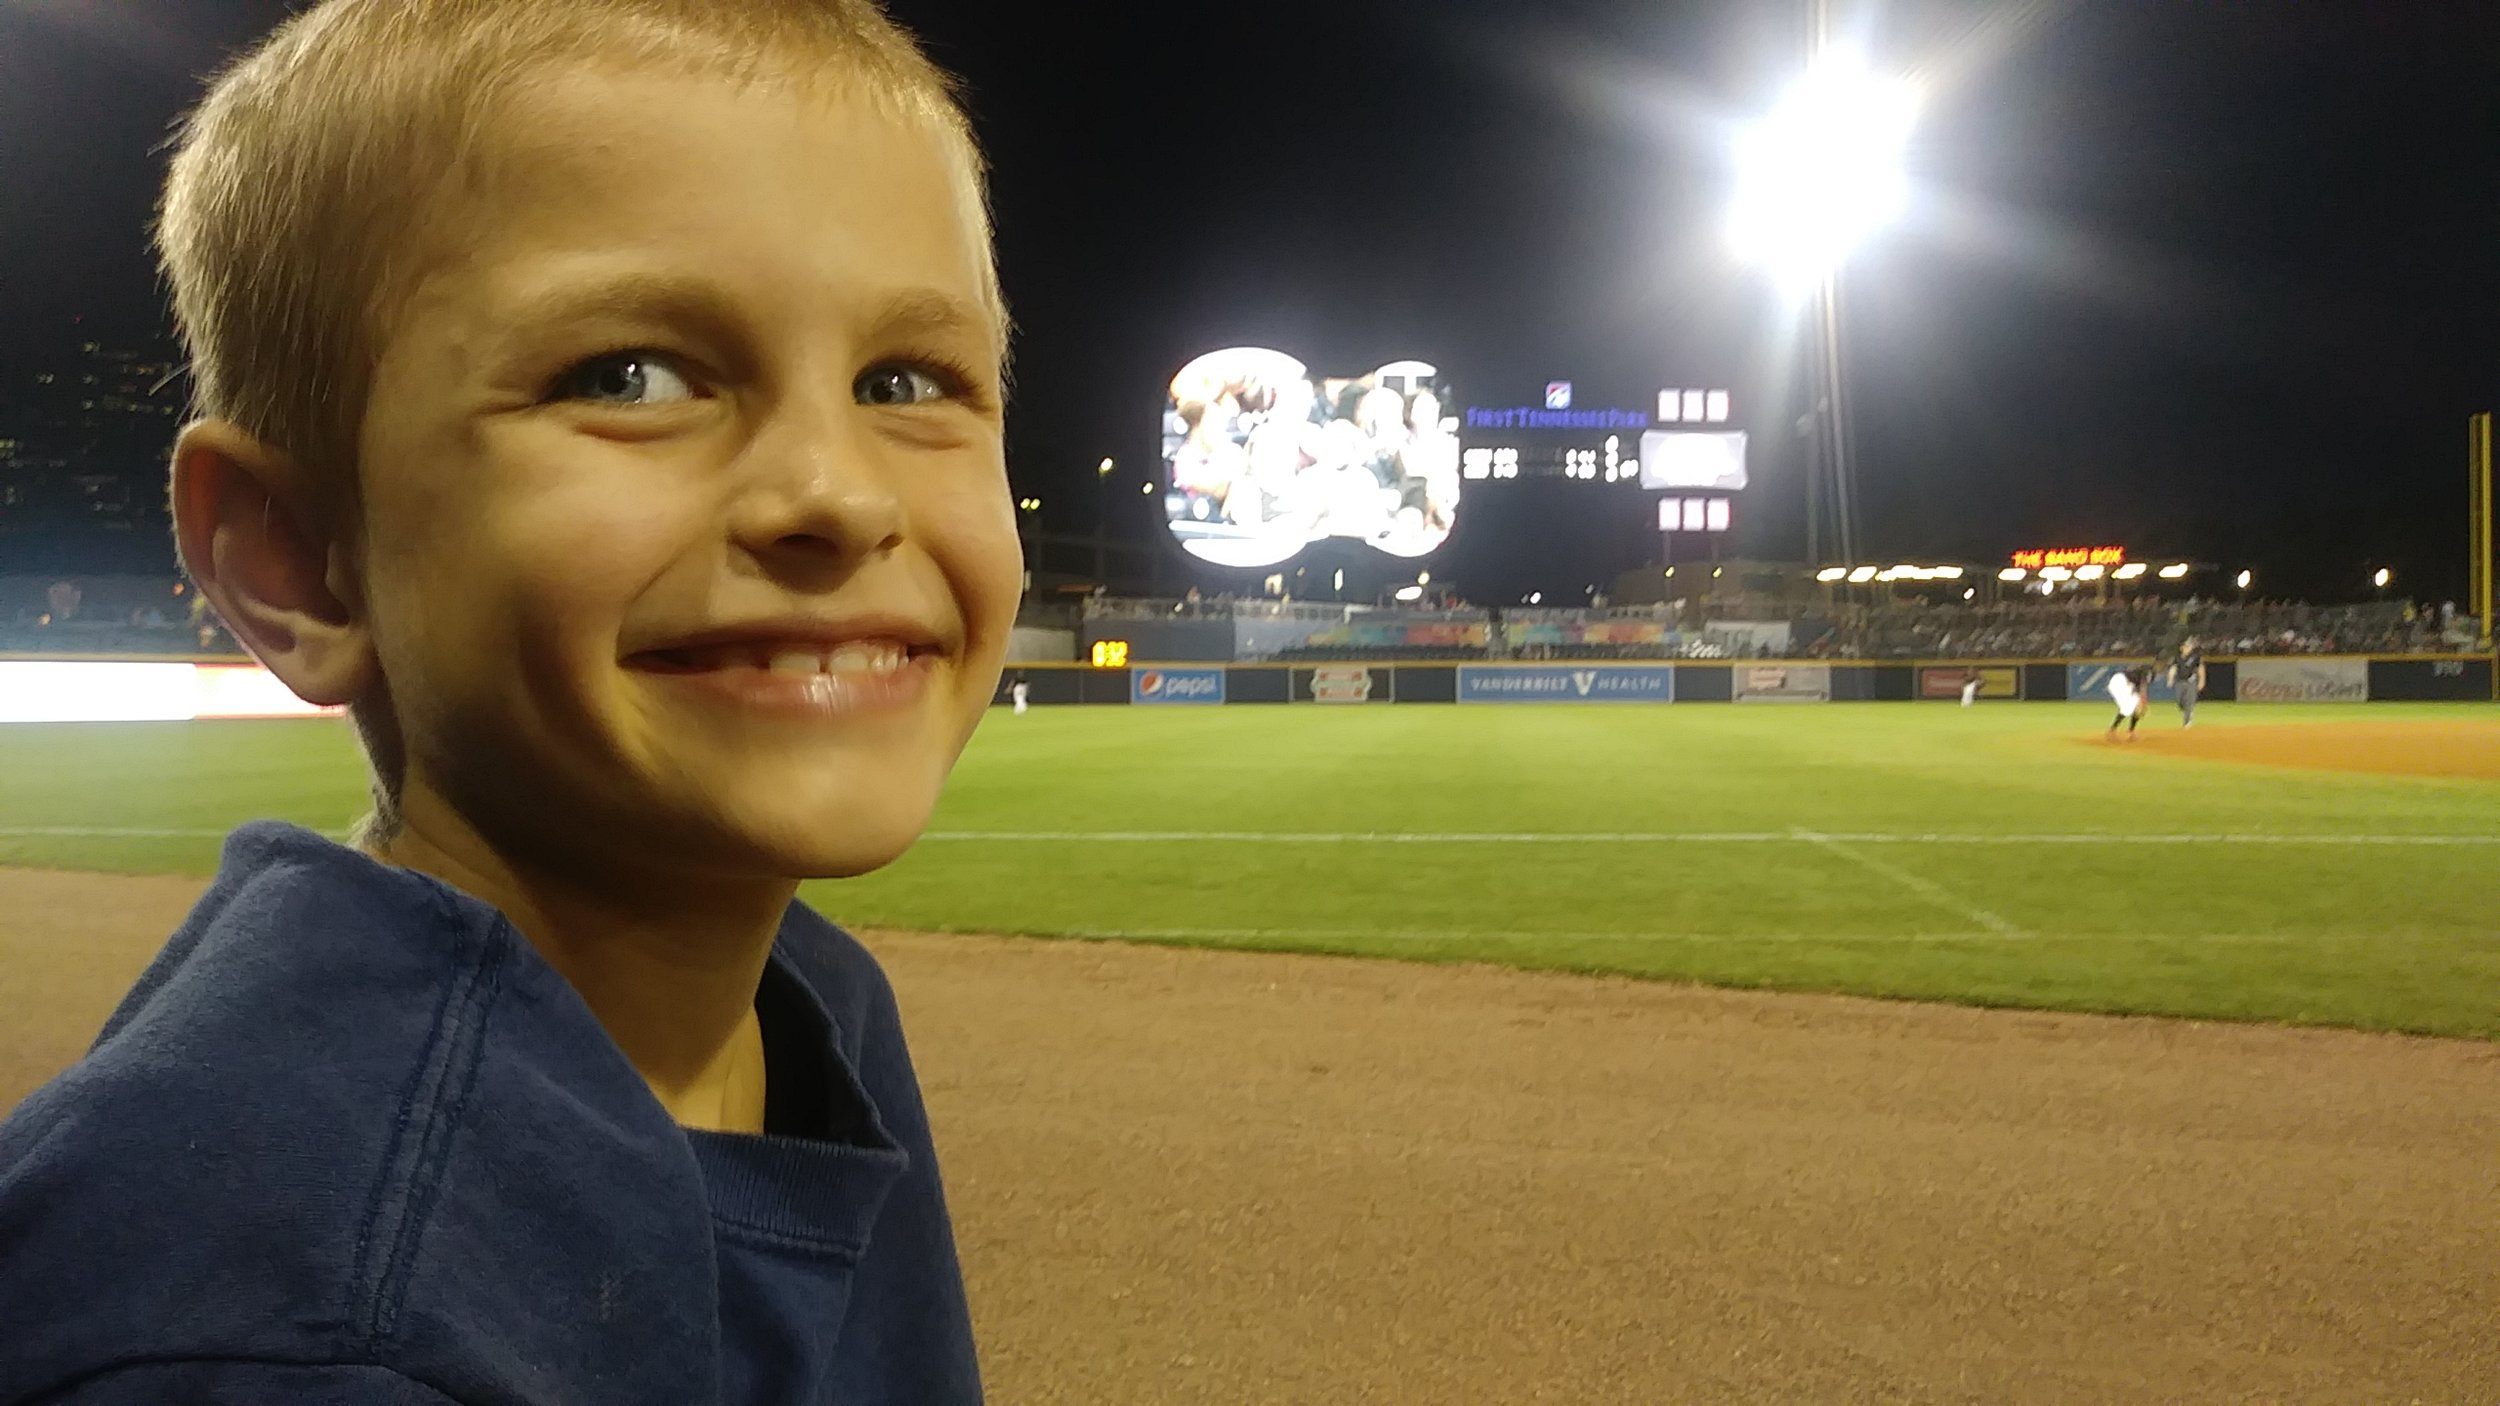 Boys at Sounds Game